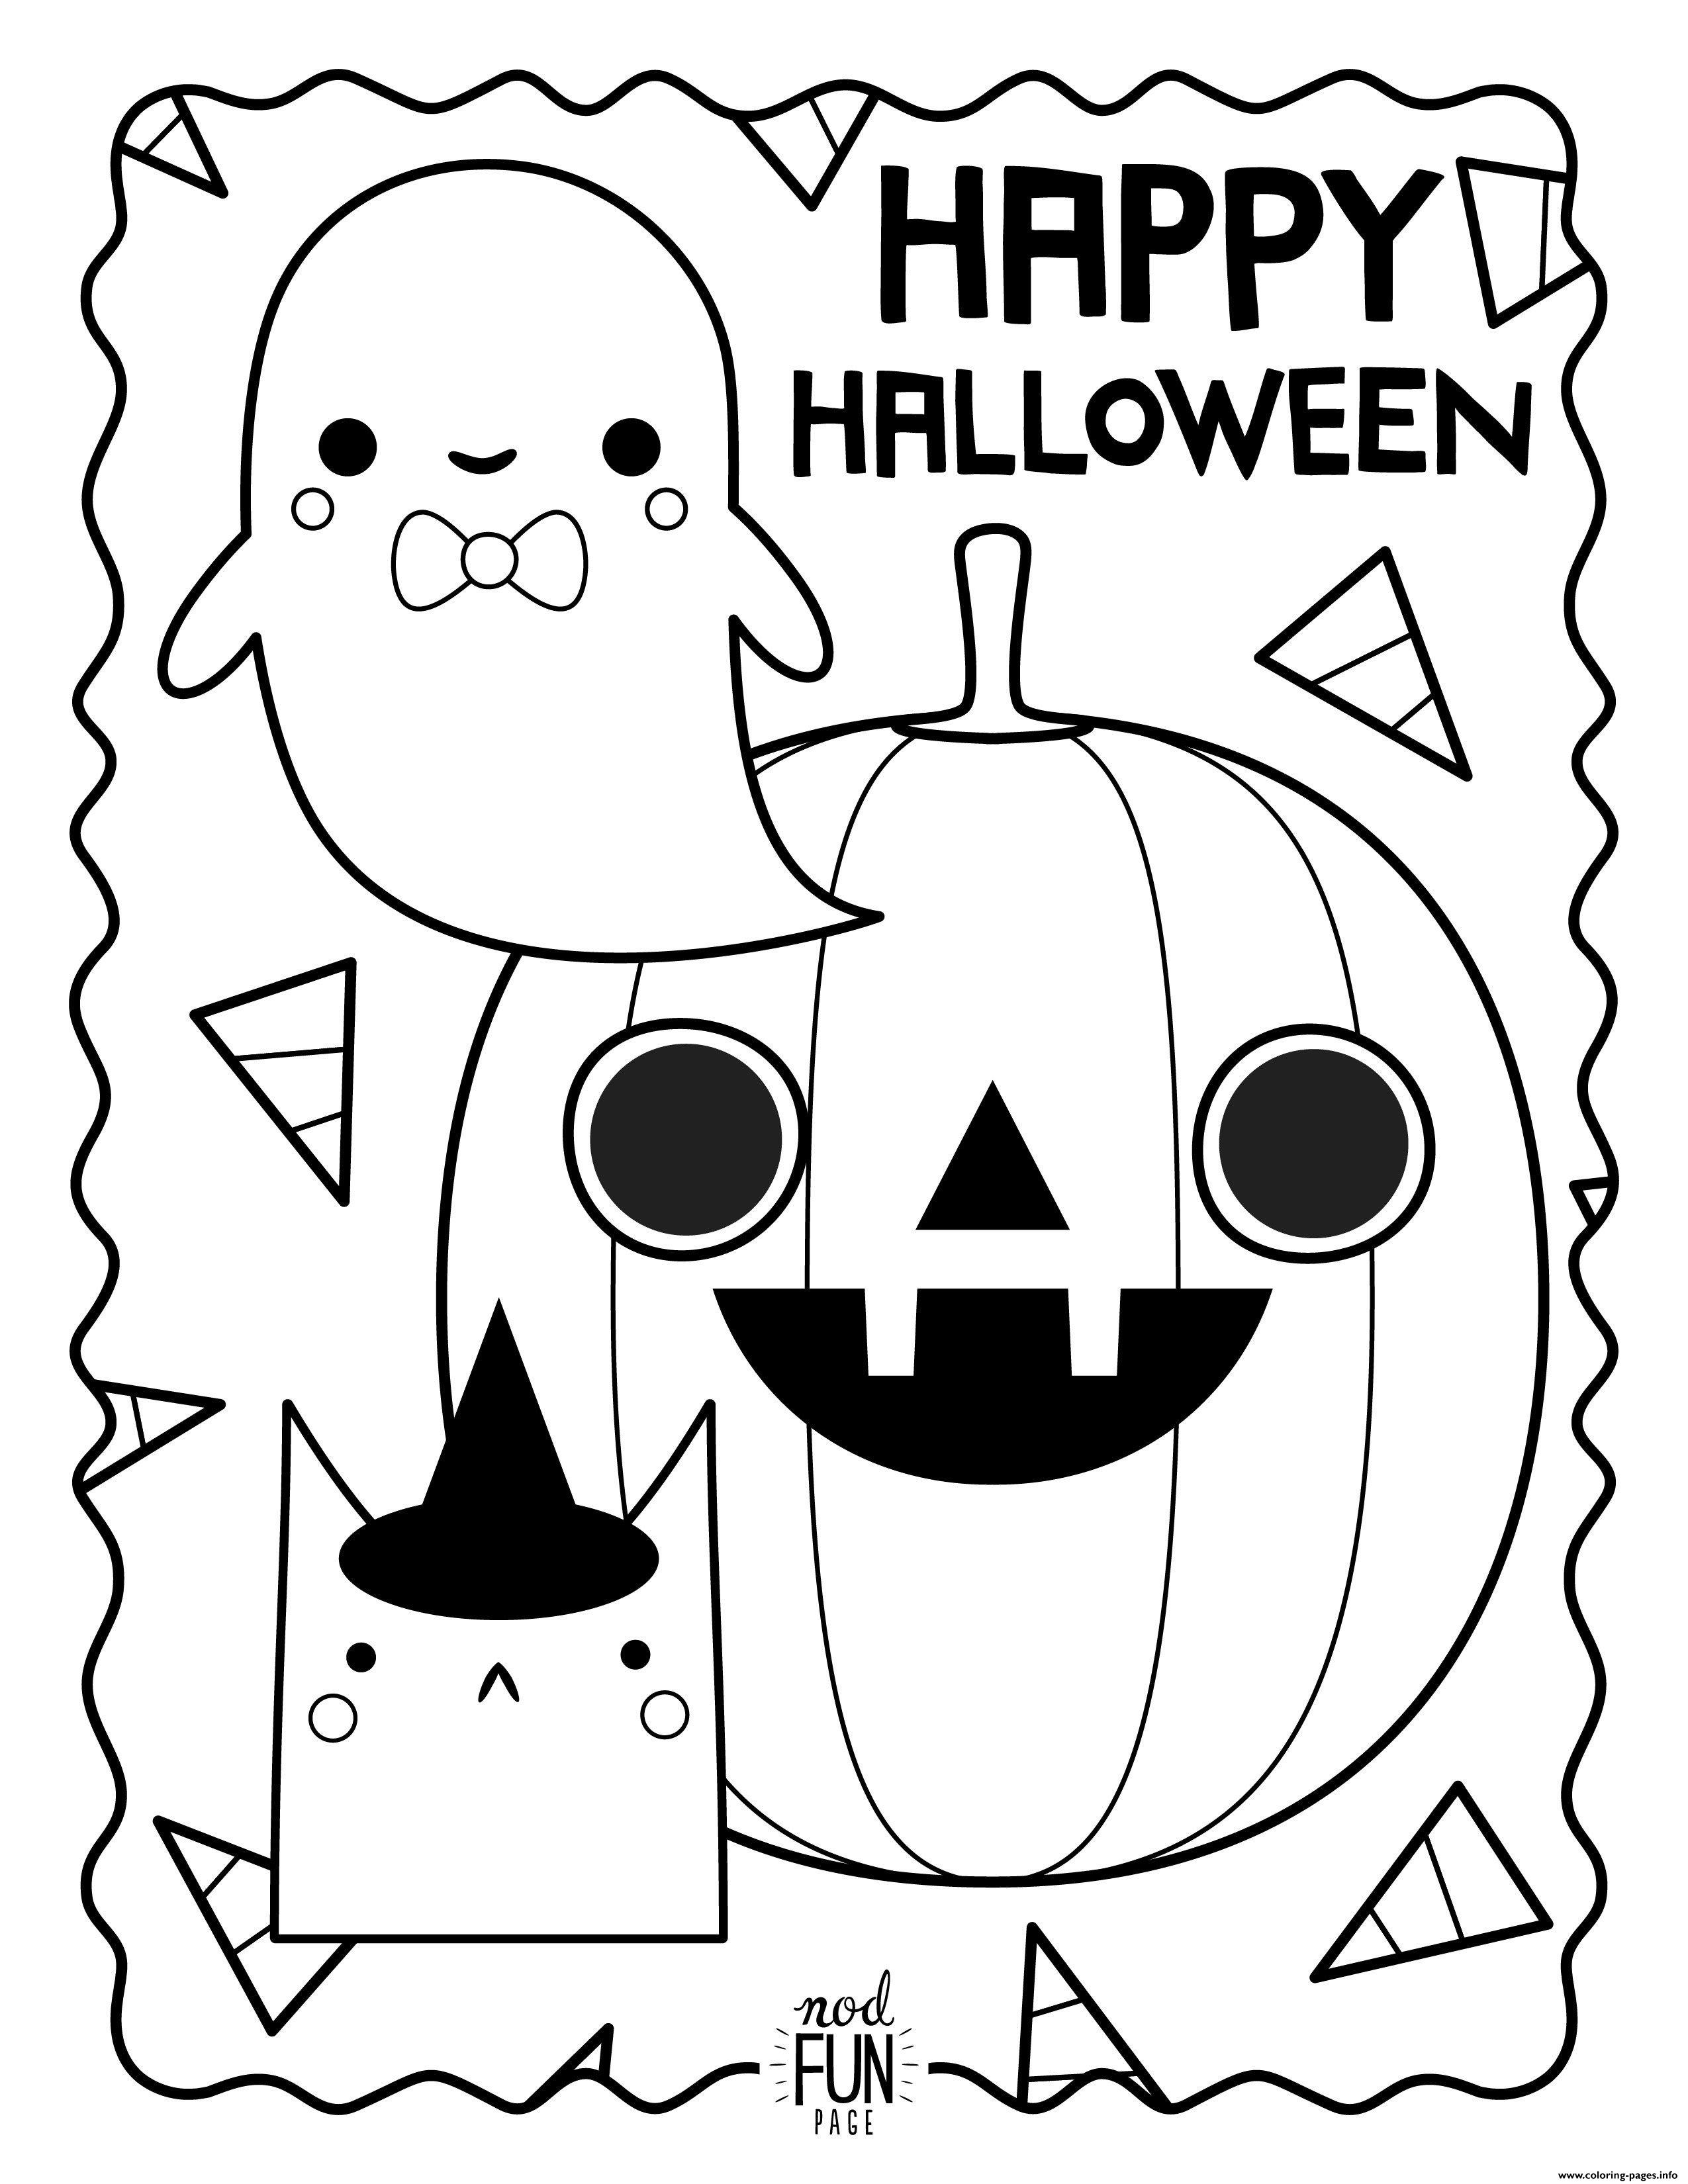 halloween coloring pages pumpkin happy halloween ghost pumpkin car coloring pages printable coloring pumpkin pages halloween